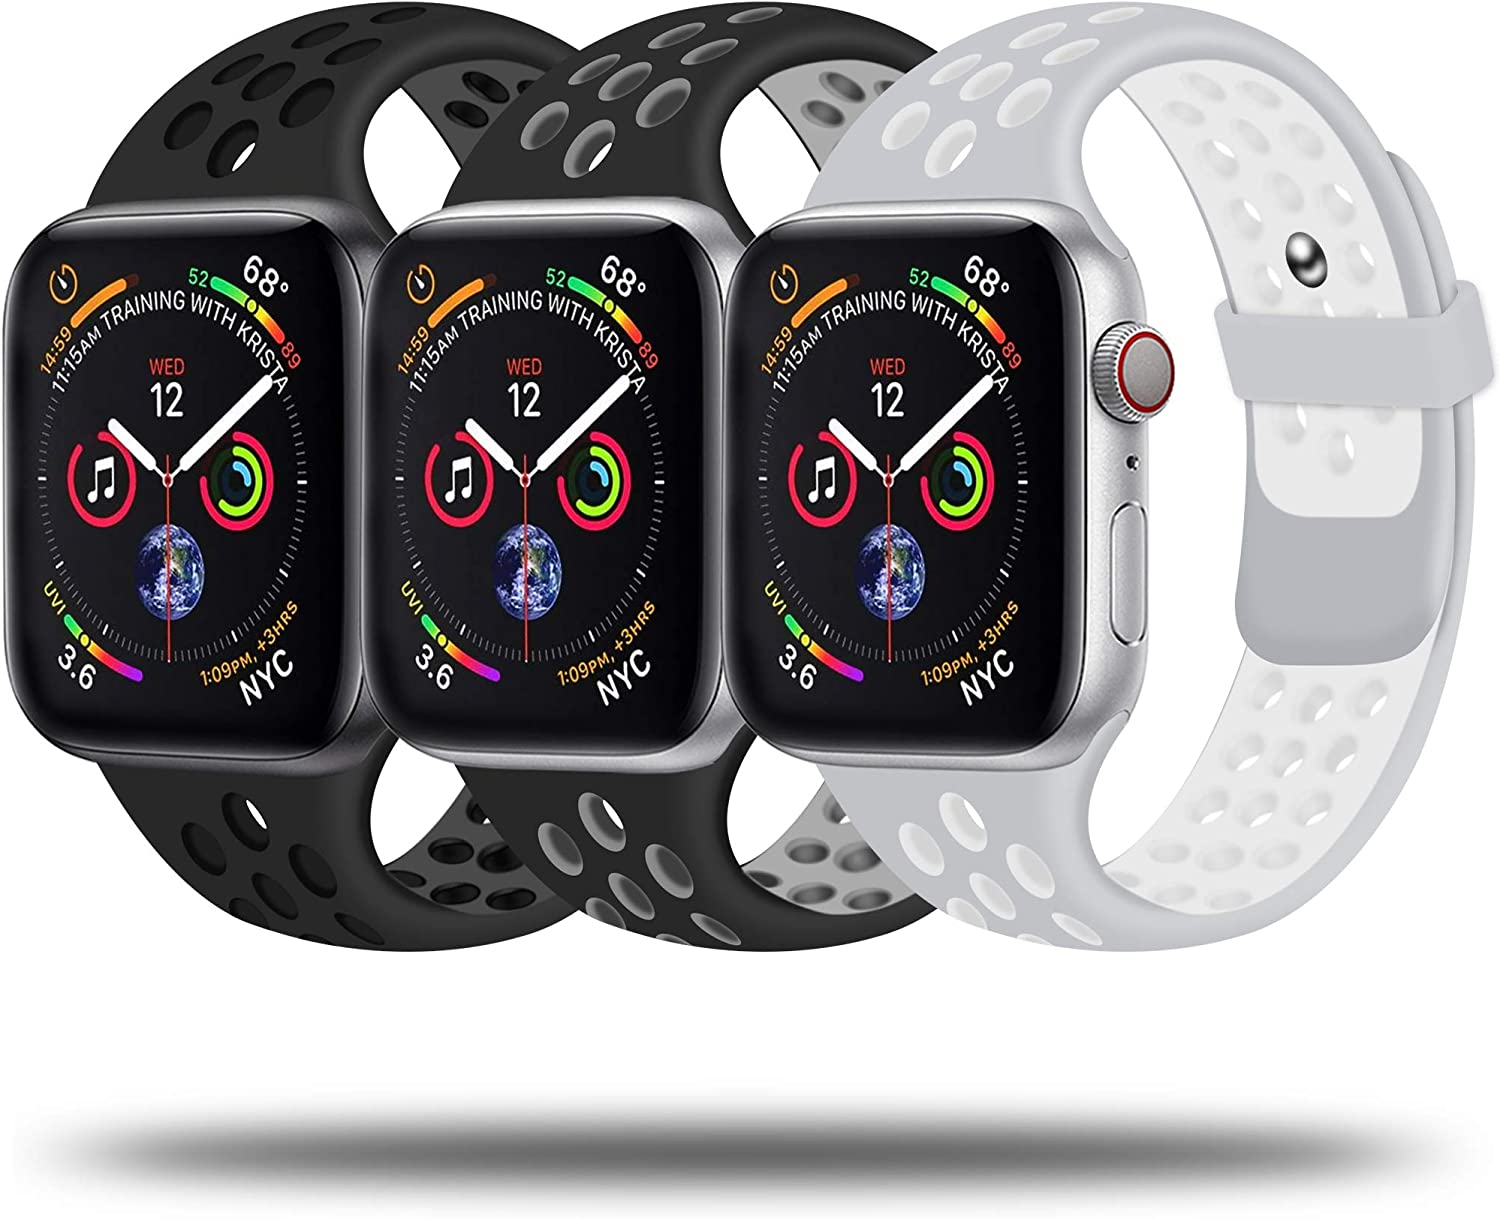 JuQBanke Sport Bands 3 Pack Compatible for Apple Watch Band 38mm 40mm 42mm 44mm, Soft Silicone Sport Replacement Wristband Compatible with iWatch Series 1/2/3/4/5/6/SE